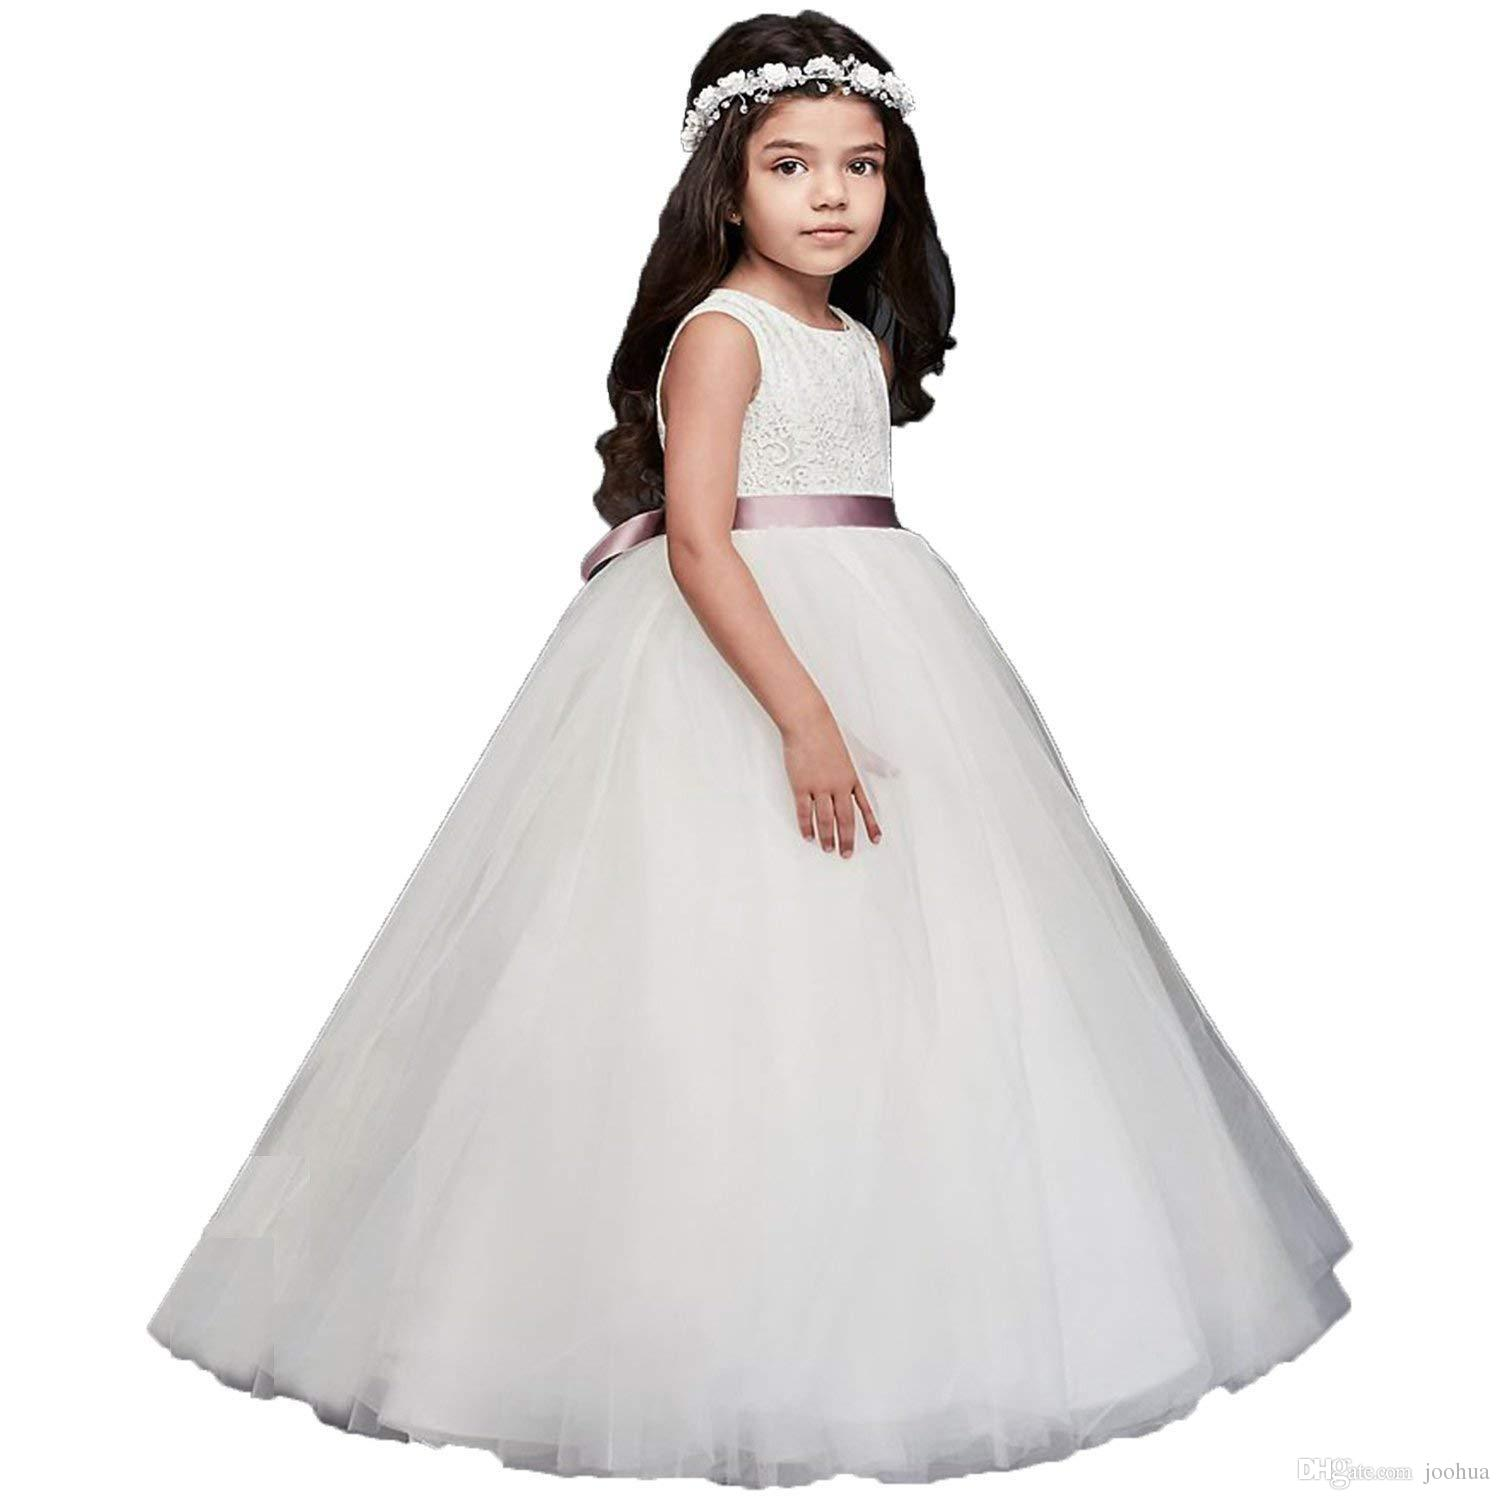 4c908bb4f89 Ivory Fancy Lace Flower Girl Dress With Heart Cutout On Back 2 14 Years Old  Girl Bridesmaid Dress Communion Big Flower Girl Dresses Bill Levkoff Flower  Girl ...